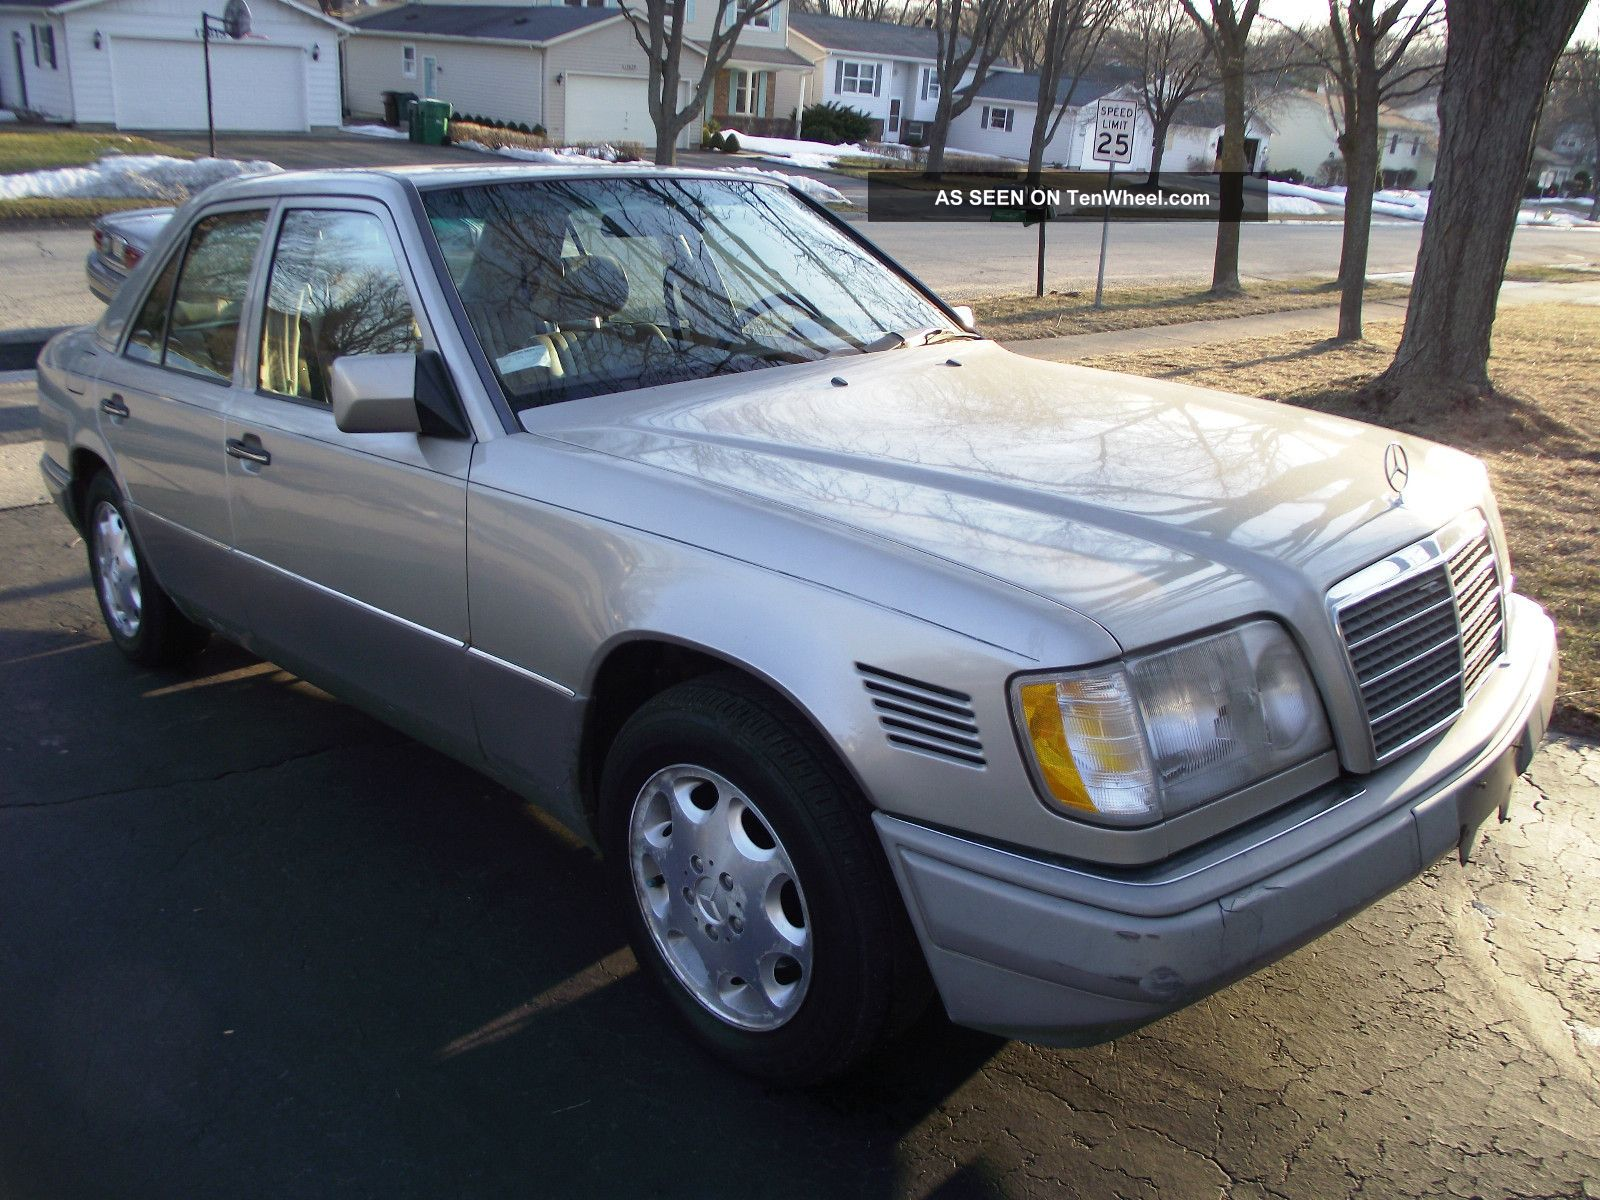 1995 mercedes benz e300 diesel car runs well